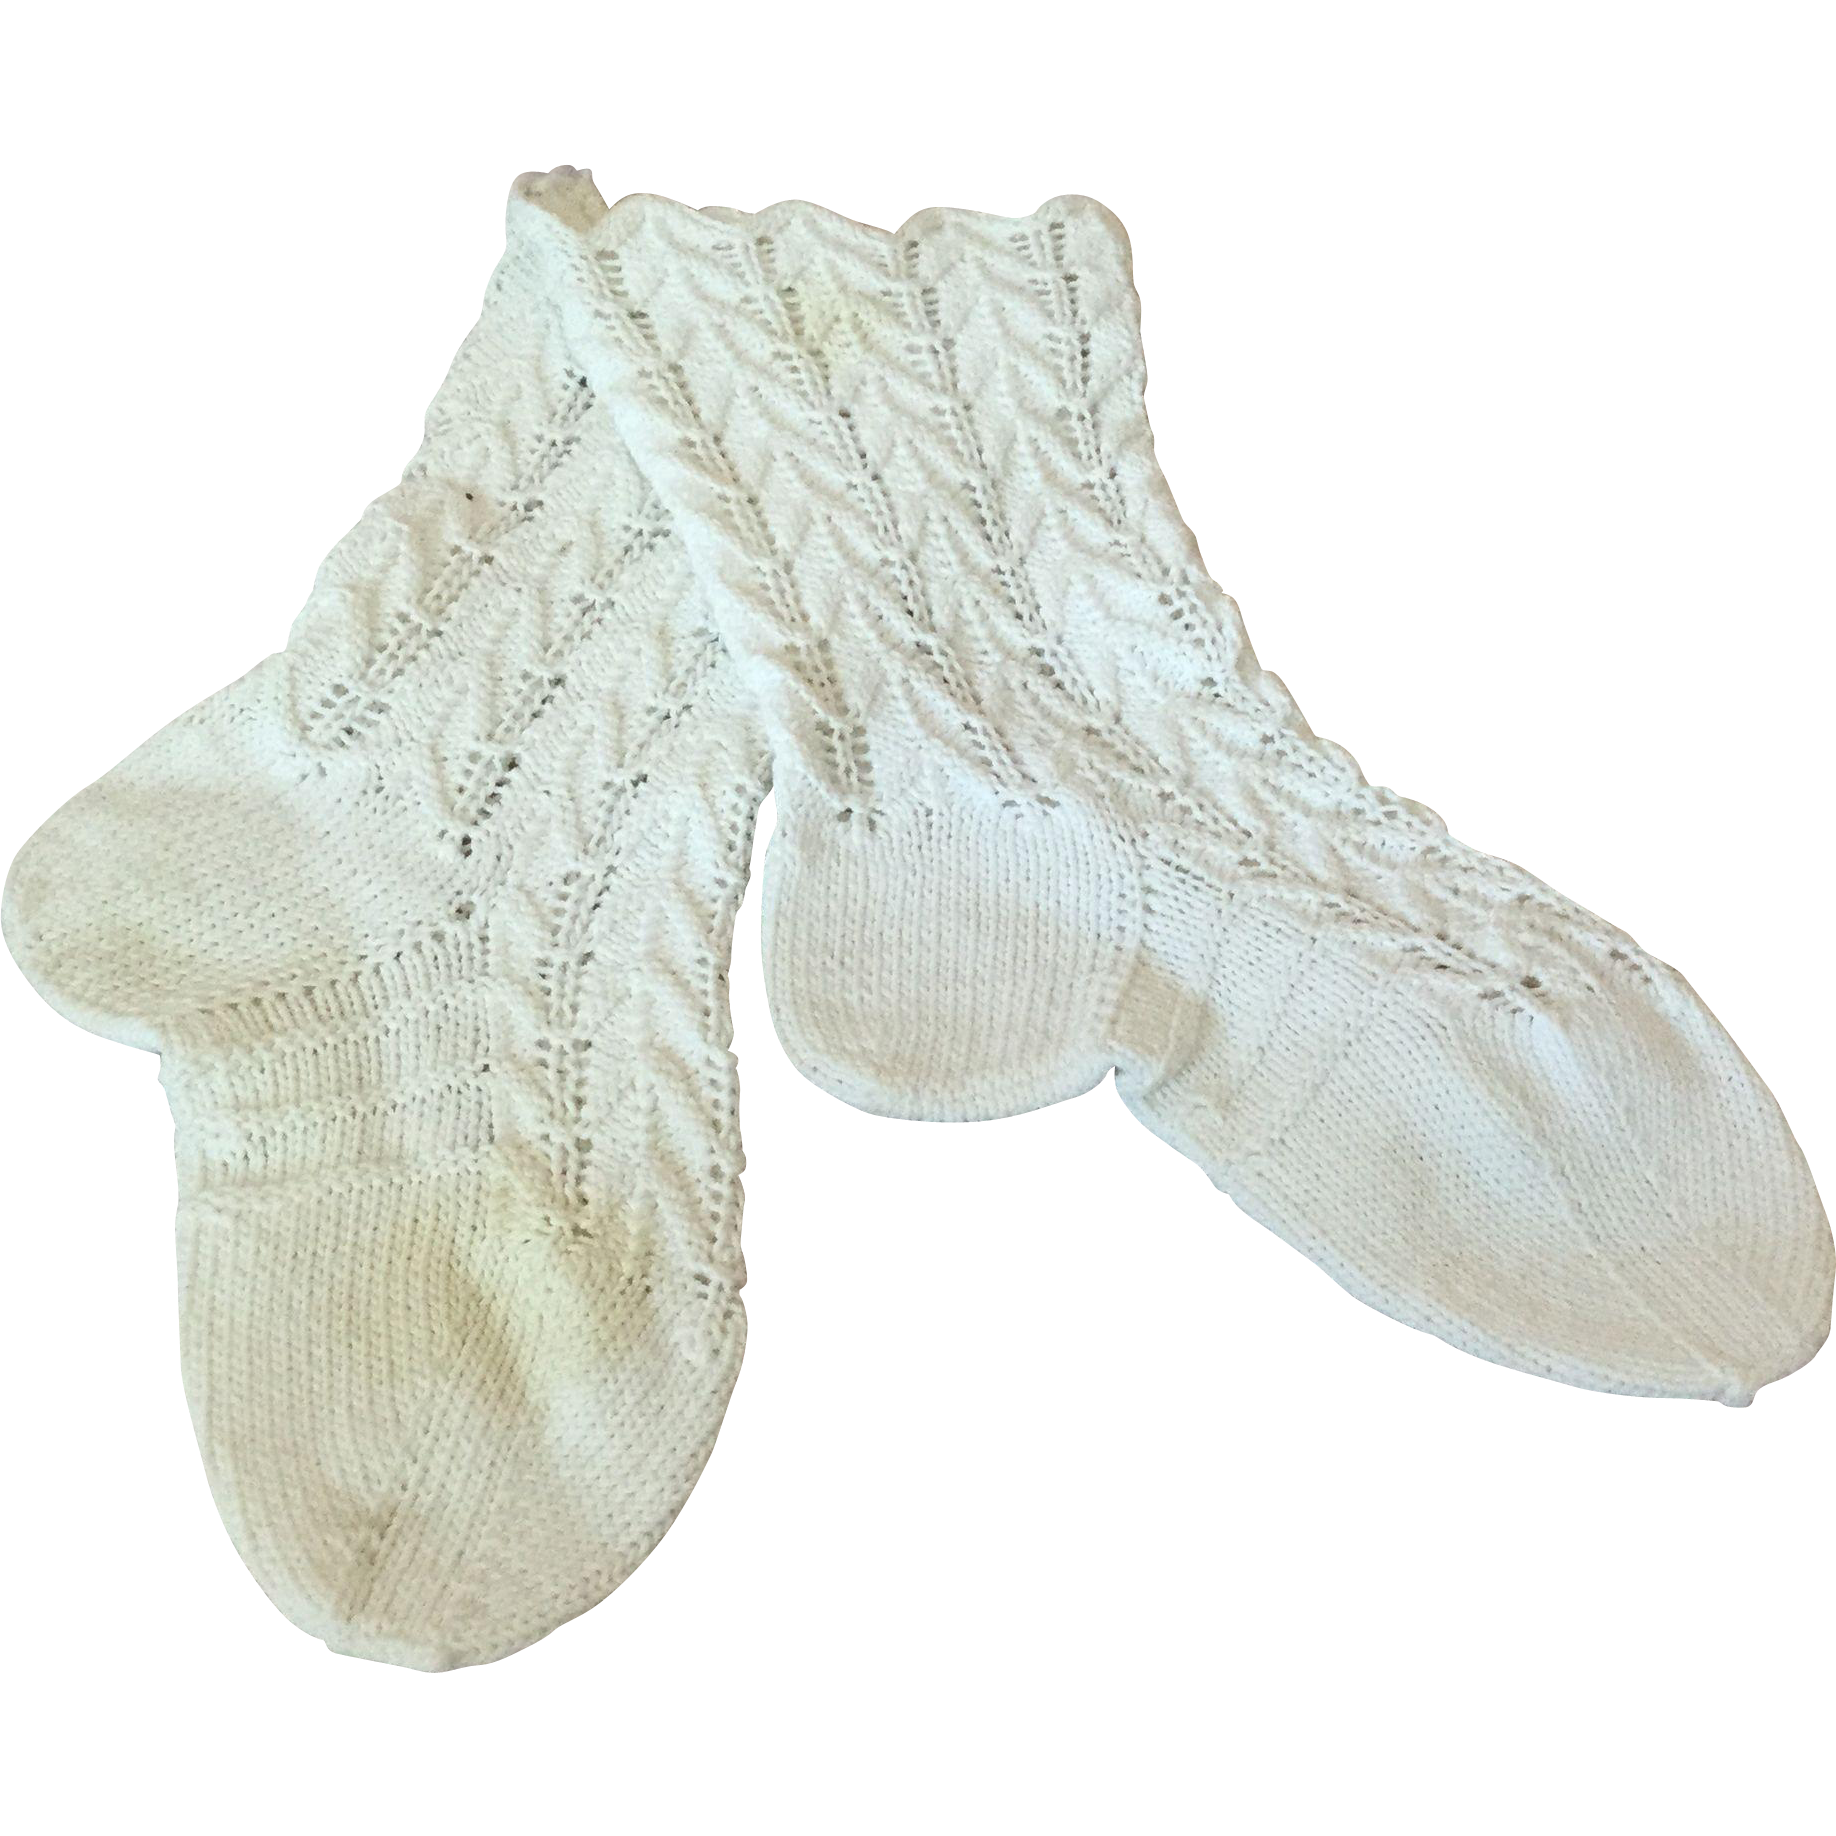 Late 19c. Cotton Hand knitted Lace Socks